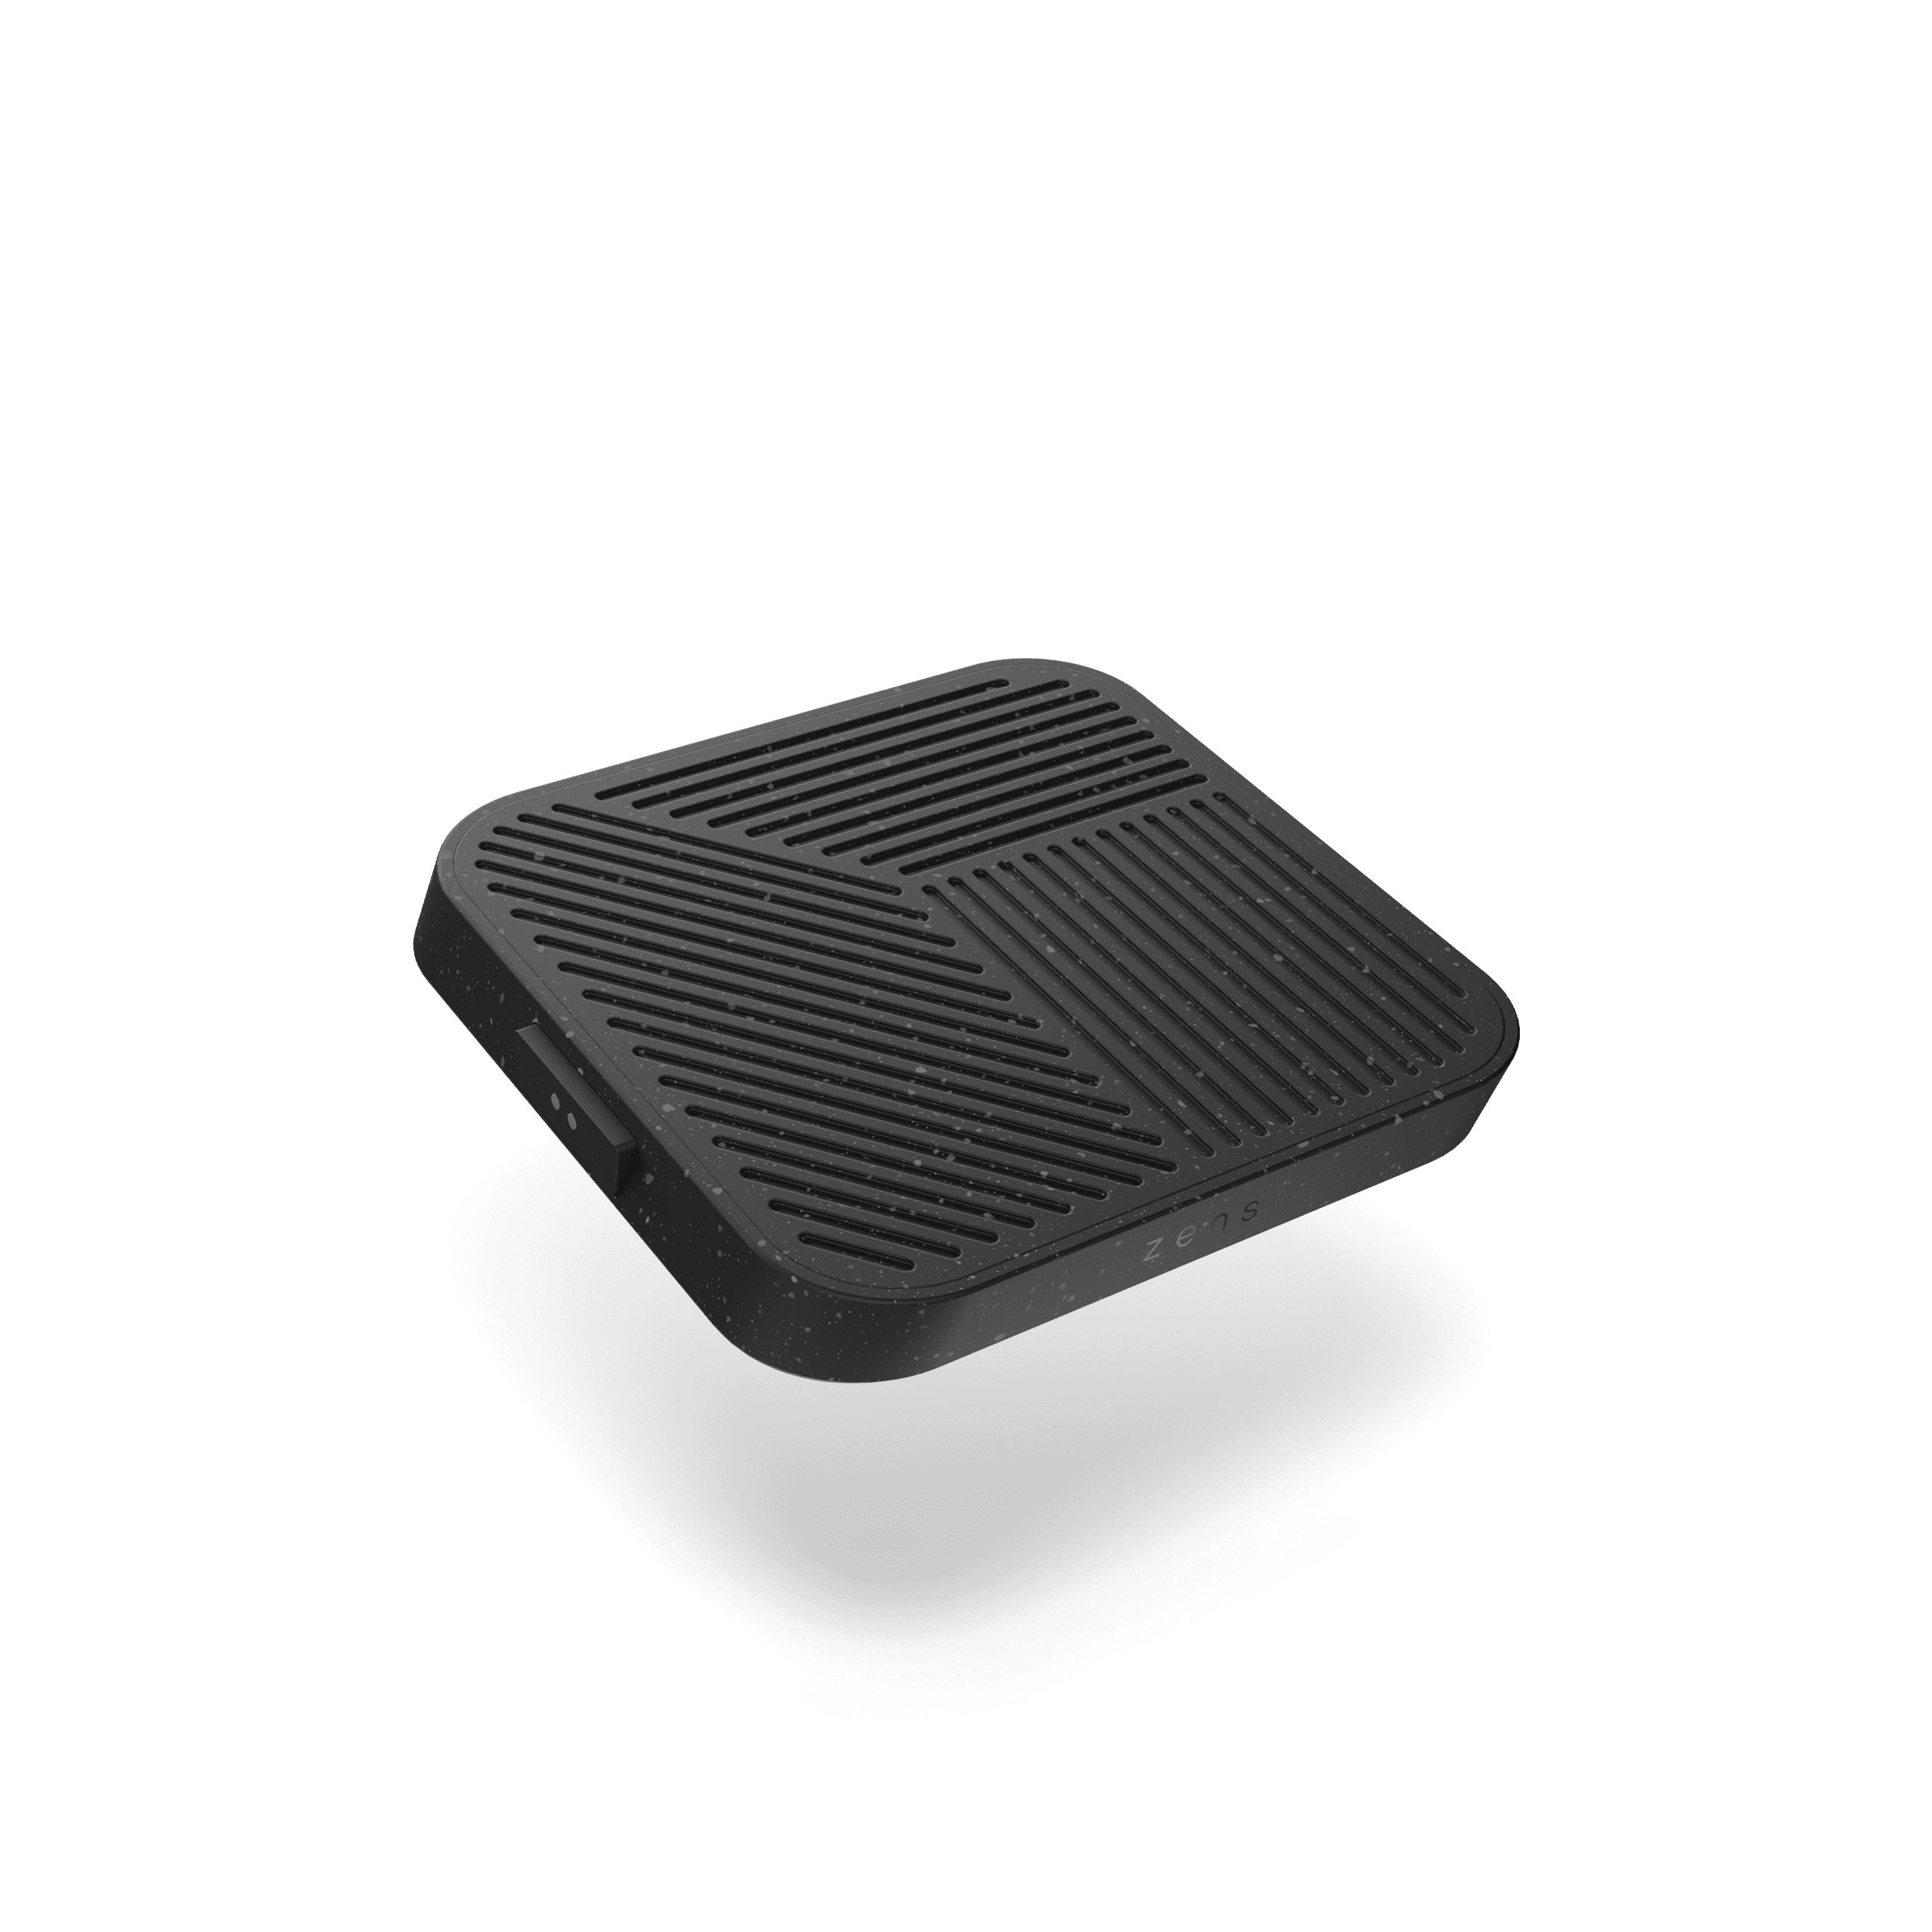 Modular single wireless charger extension